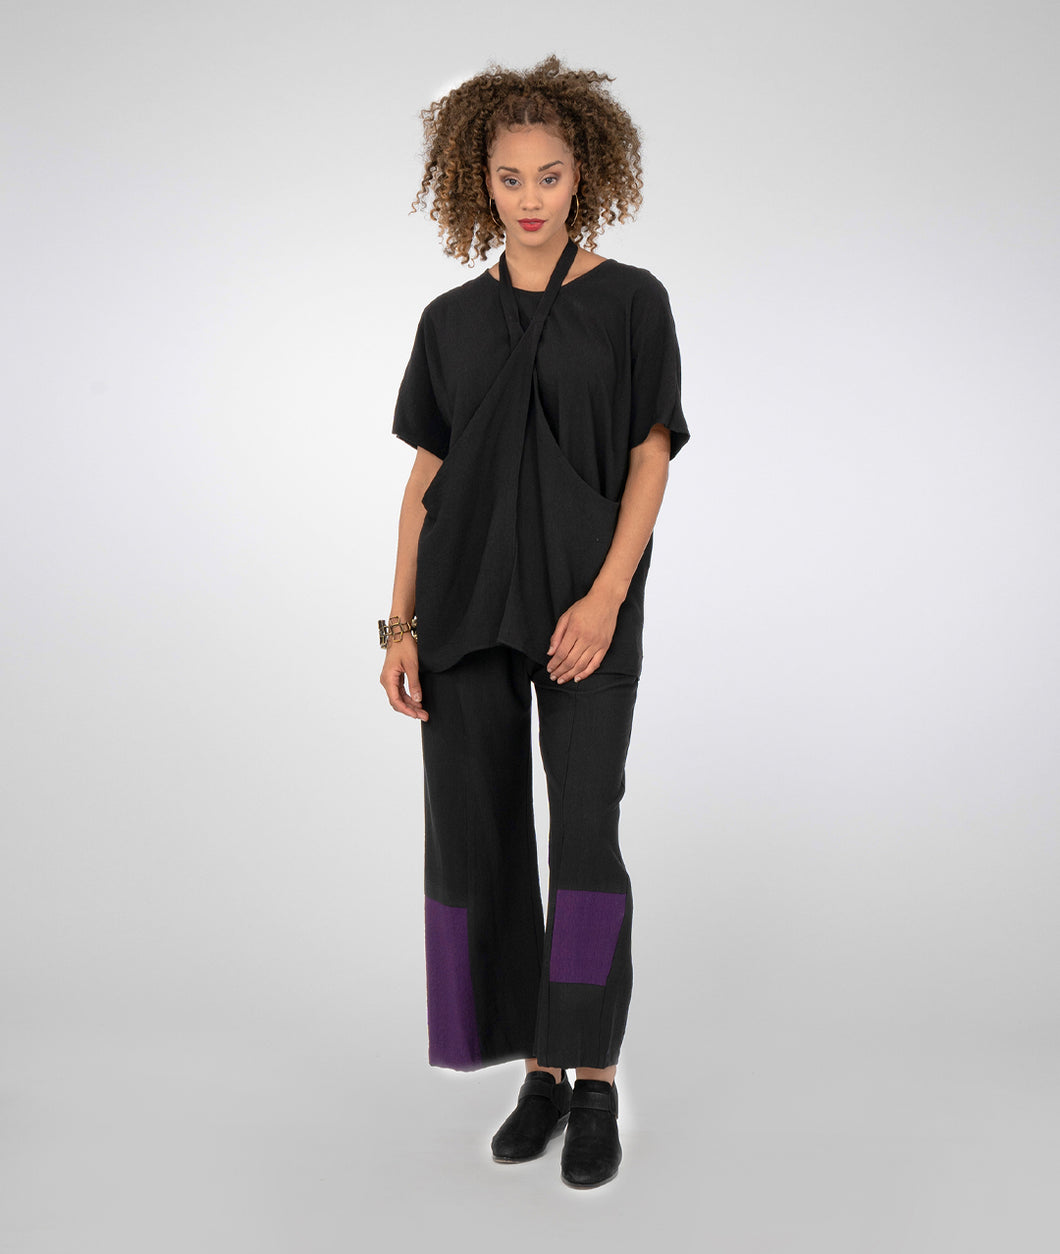 model in a black pant with deep purple color blocking, worn with a black top with extrended sides joined by a strap worn around the neck, halter style